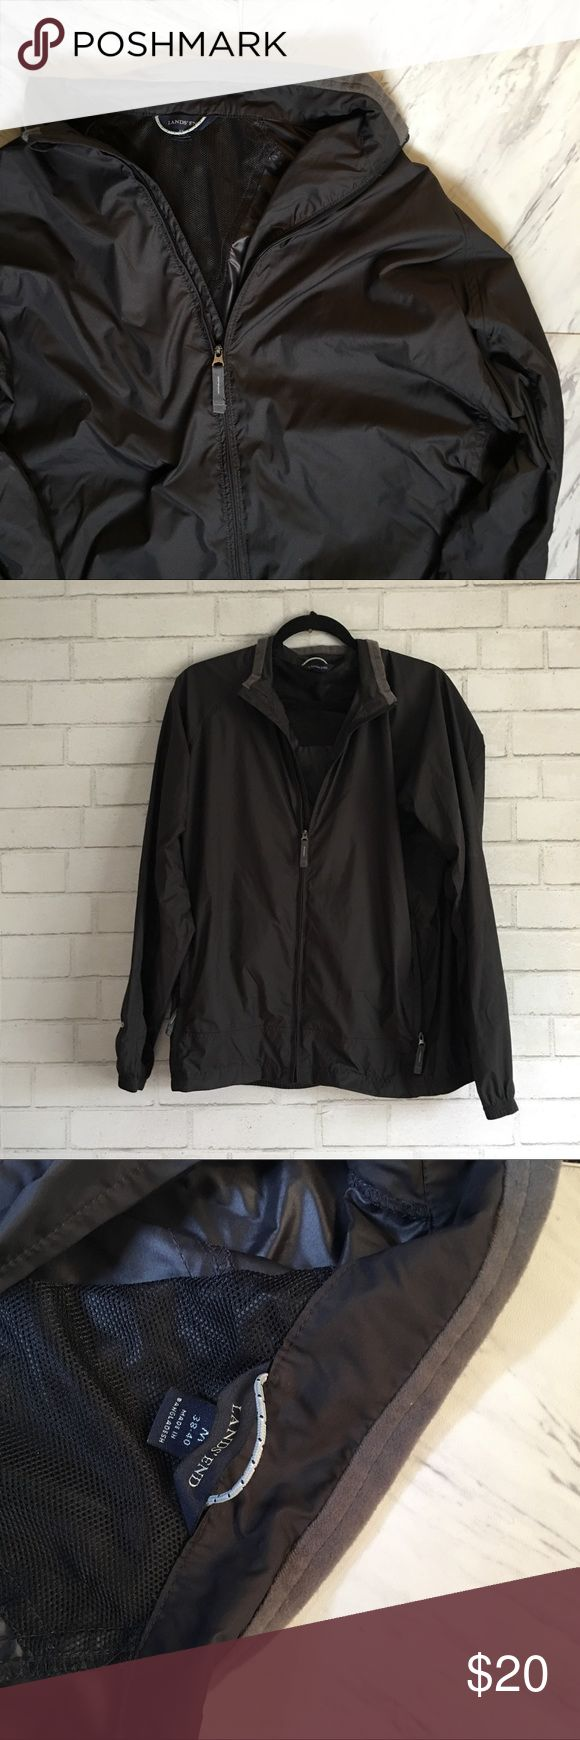 BLACK WINDBREAKER Black windbreaker in good condition, perfect for a windy spring day or a cool summer night dream Lands' End Jackets & Coats Windbreakers